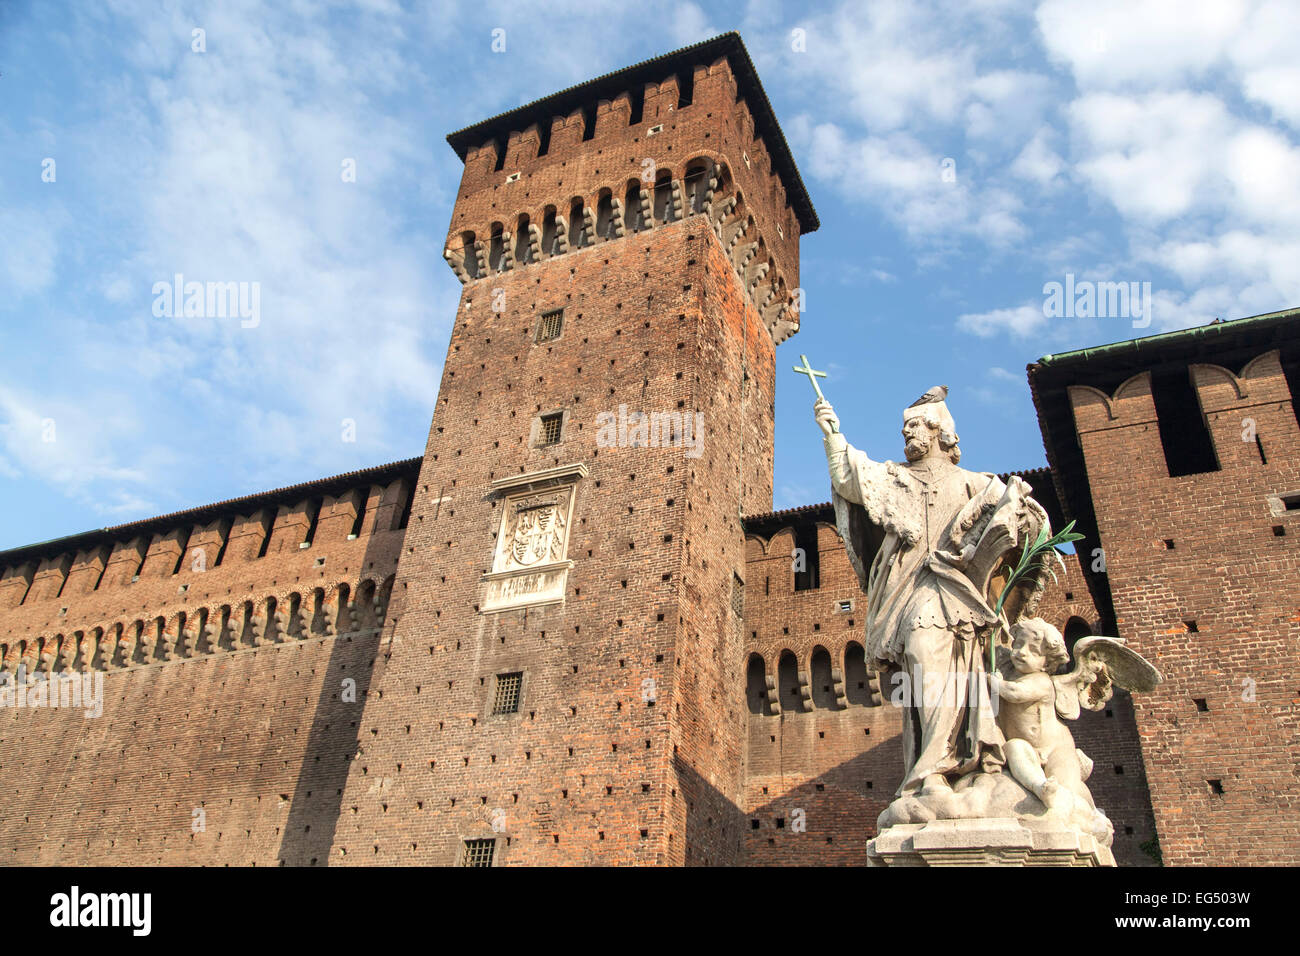 Statue of San Giovanni Nepomuceno (protector of soldiers), by Giovanni Dugnan, and tower, Sforza Castle, Milan, - Stock Image